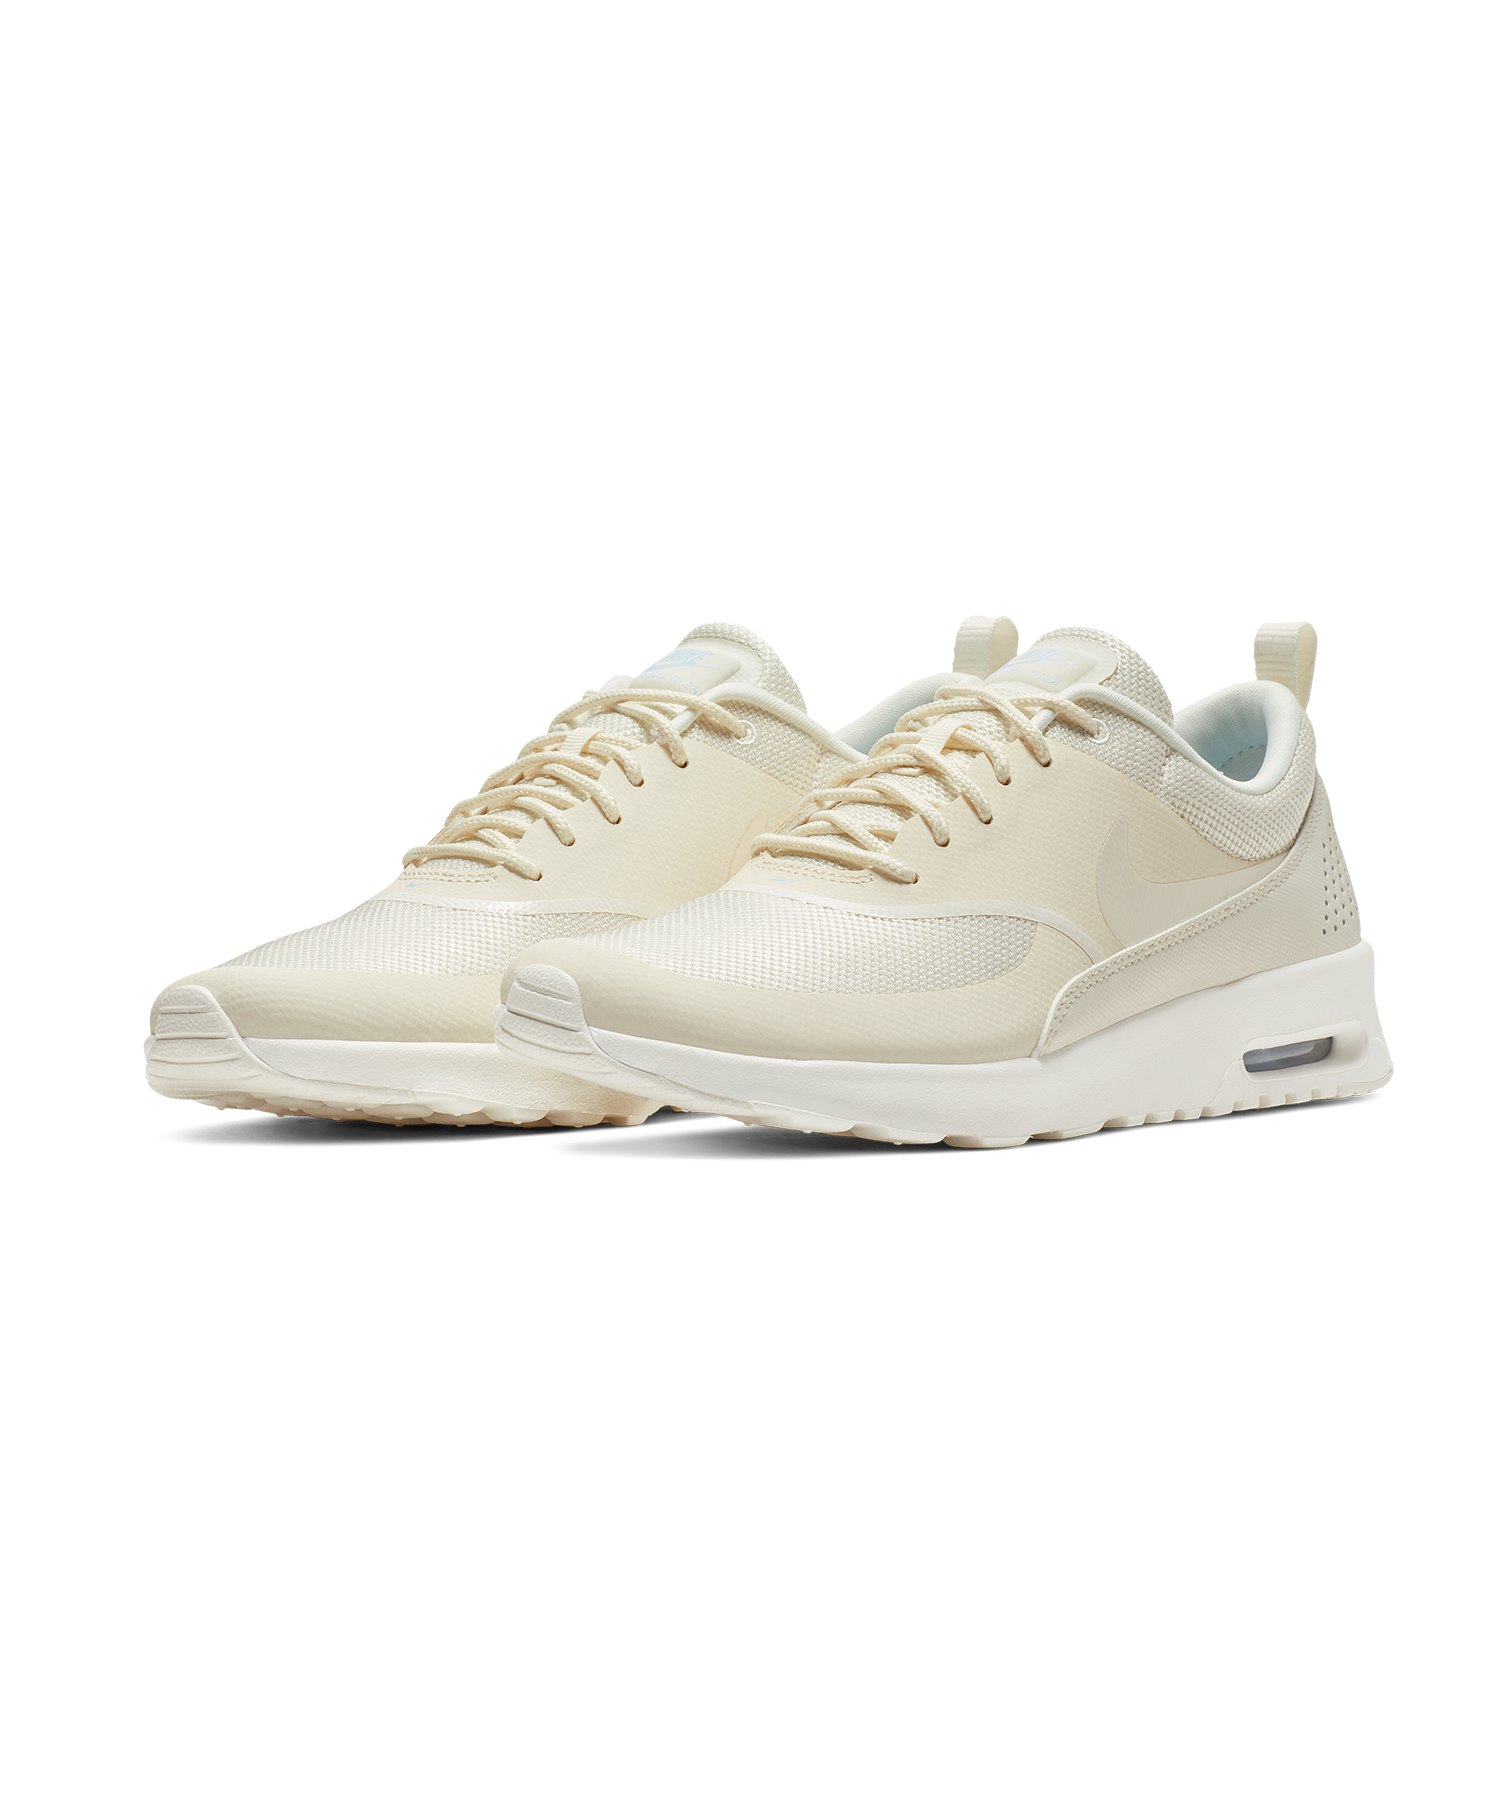 Rime » Blog Archive » Womens Nike Air Max Thea SE In Bronze